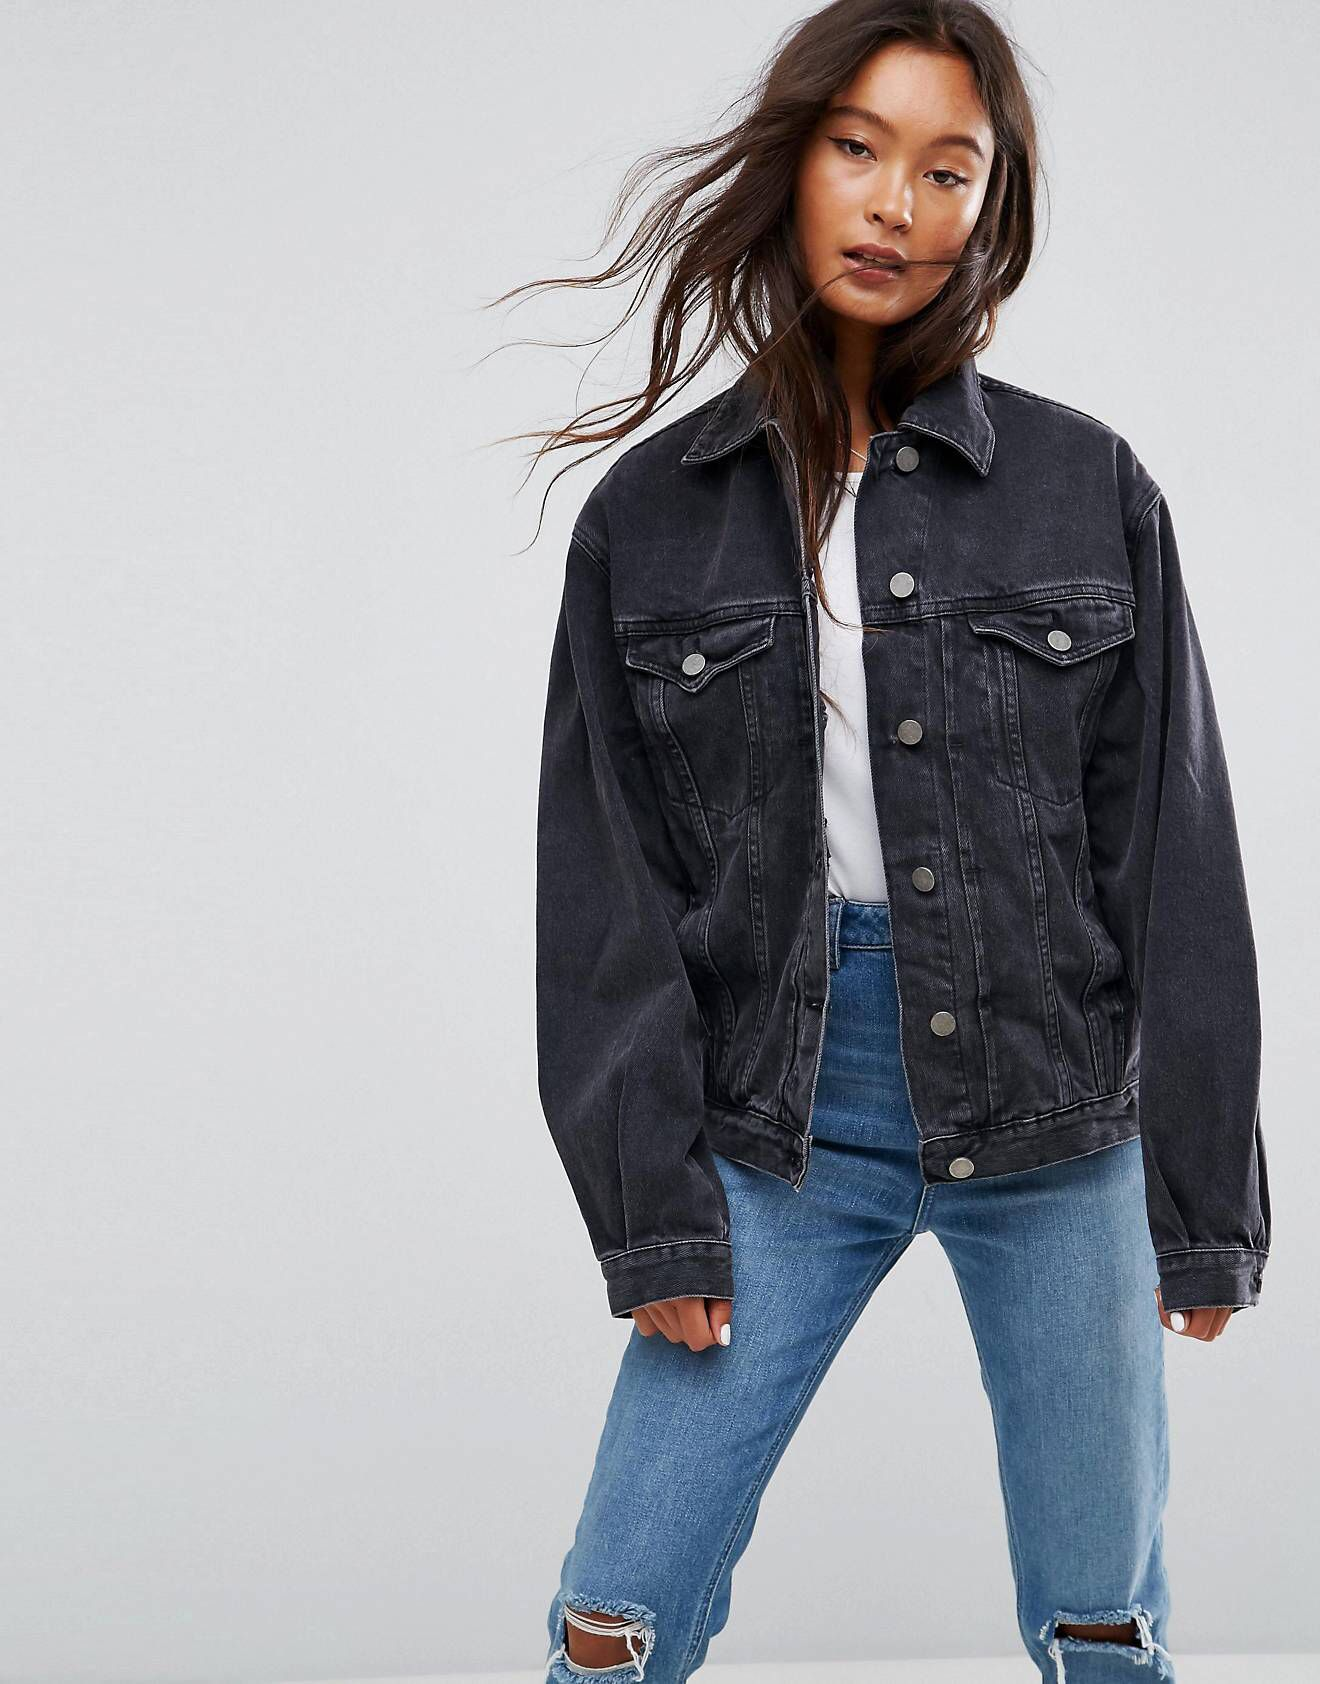 Love This From Asos Black Denim Jacket Outfit Black Denim Jacket Oversized Black Denim Jacket